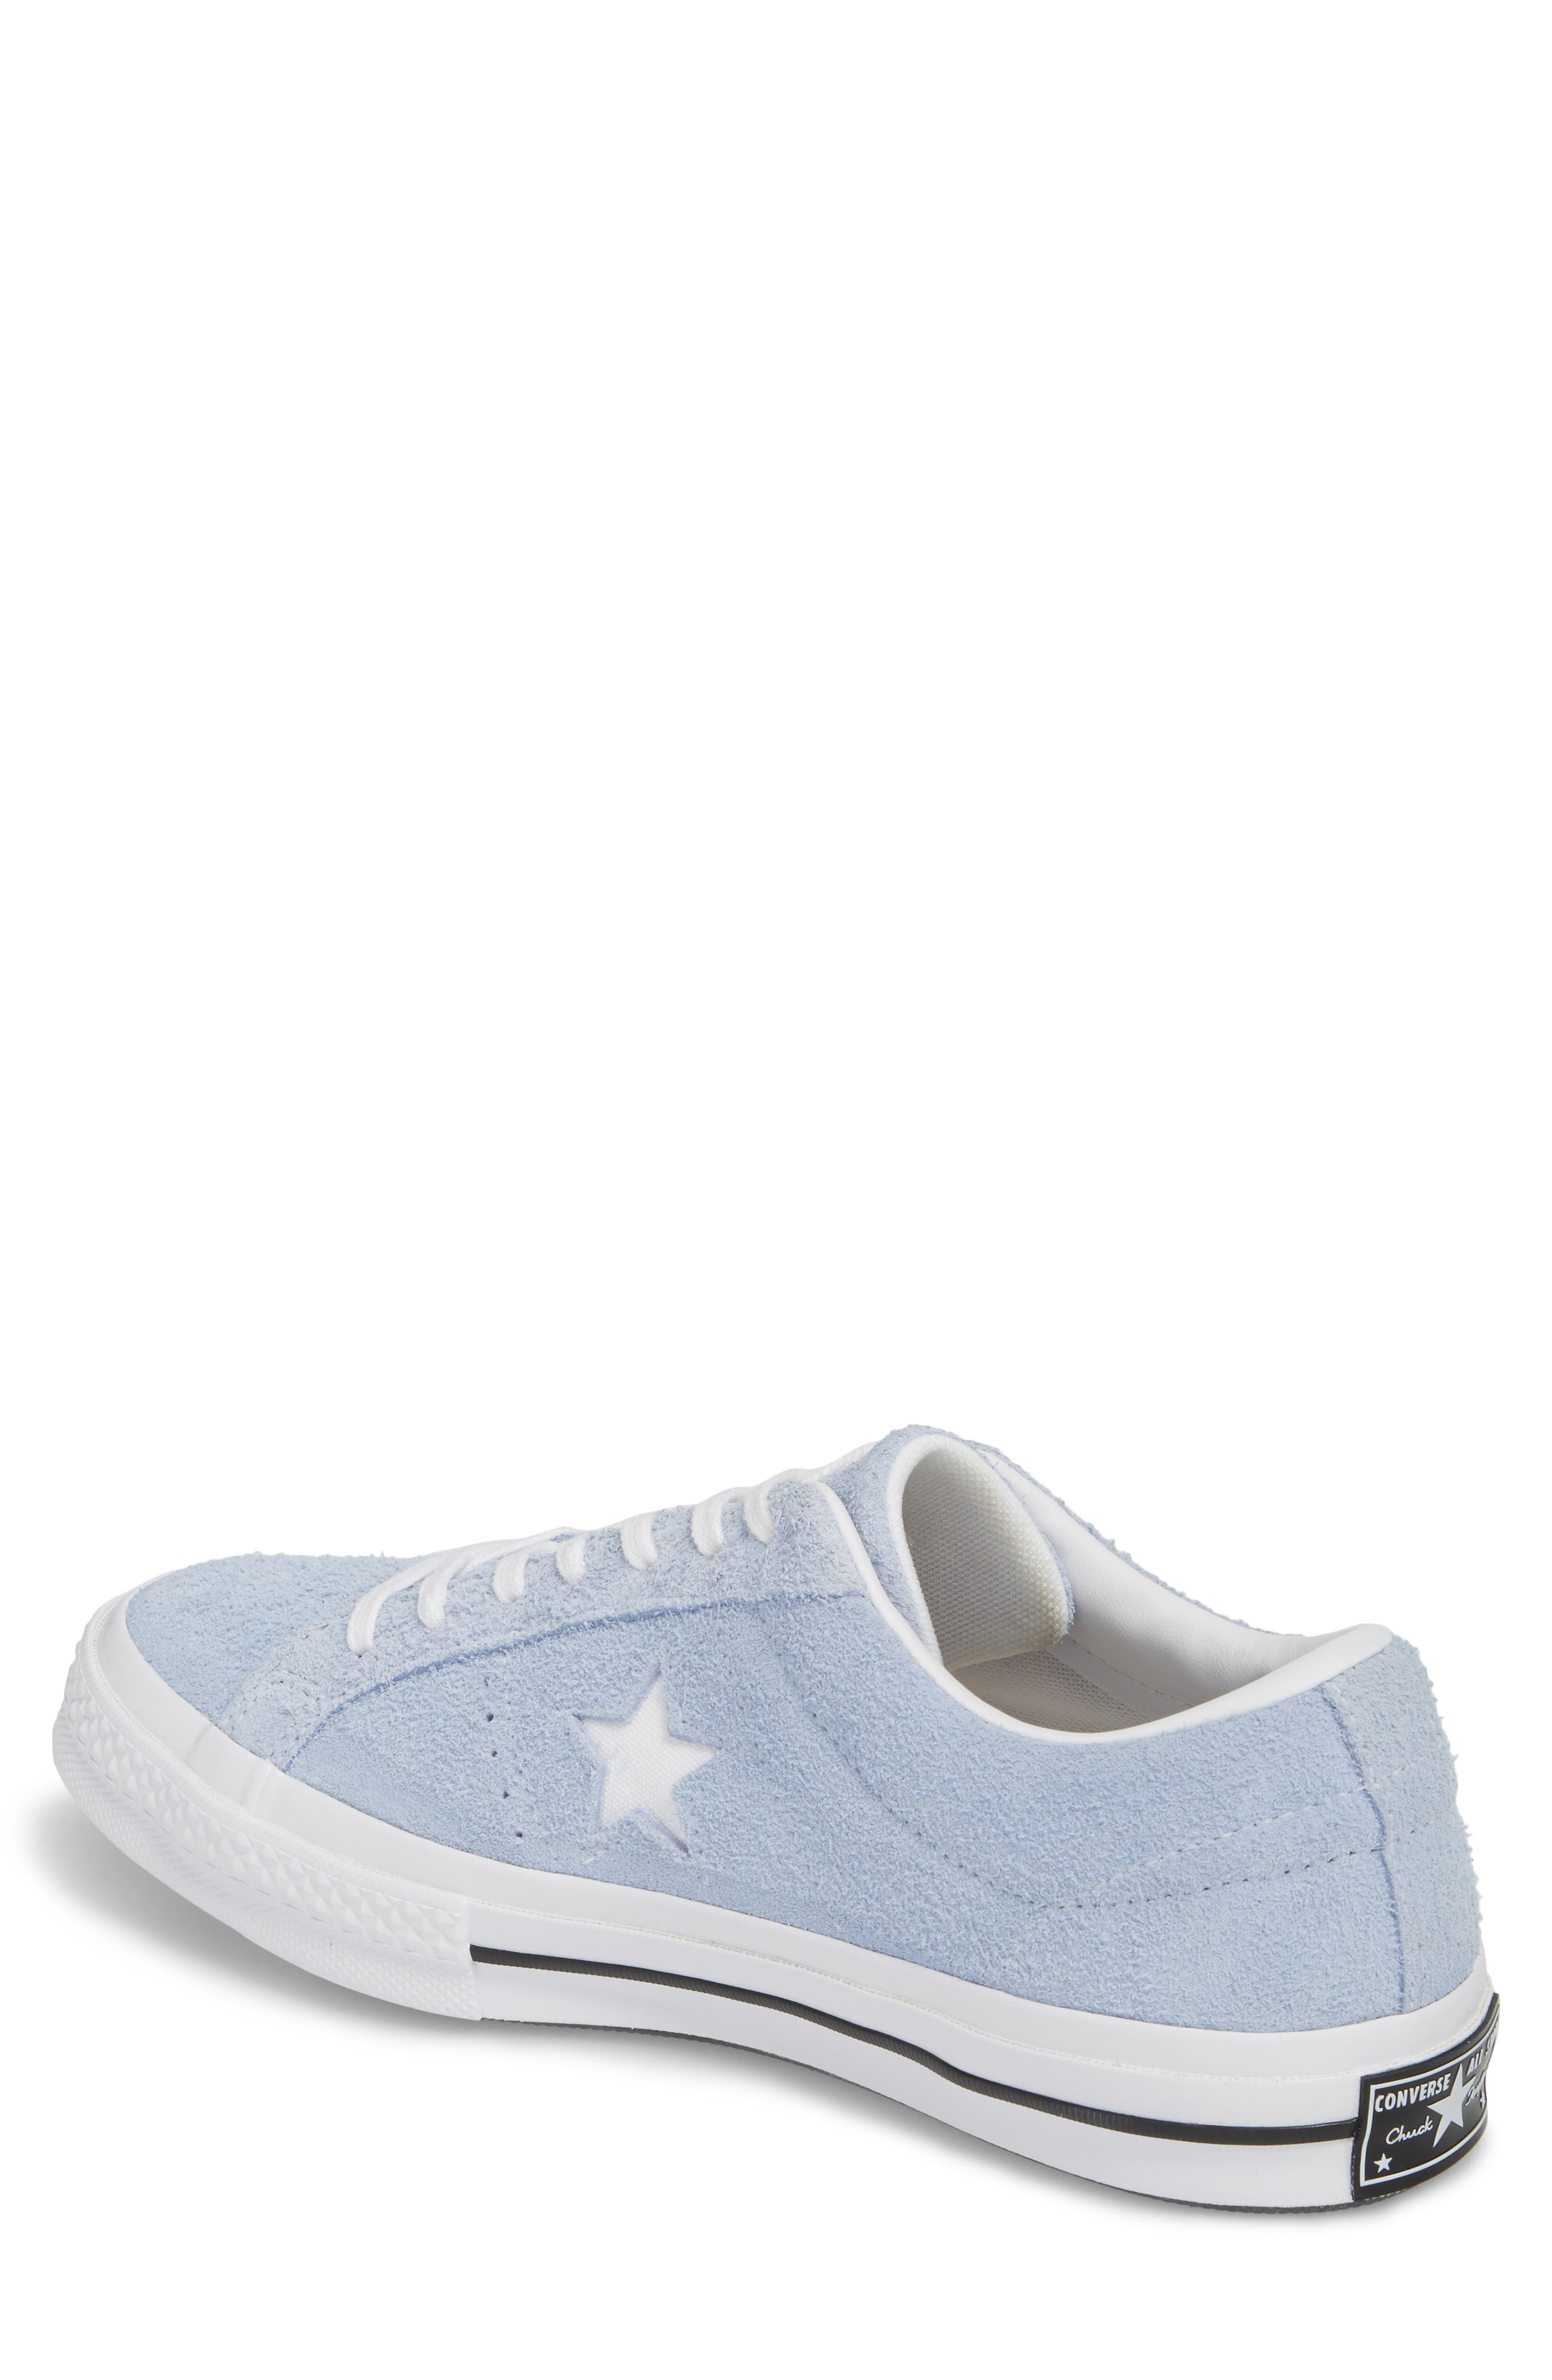 One Star Sneaker,                             Alternate thumbnail 2, color,                             Blue Chill Suede